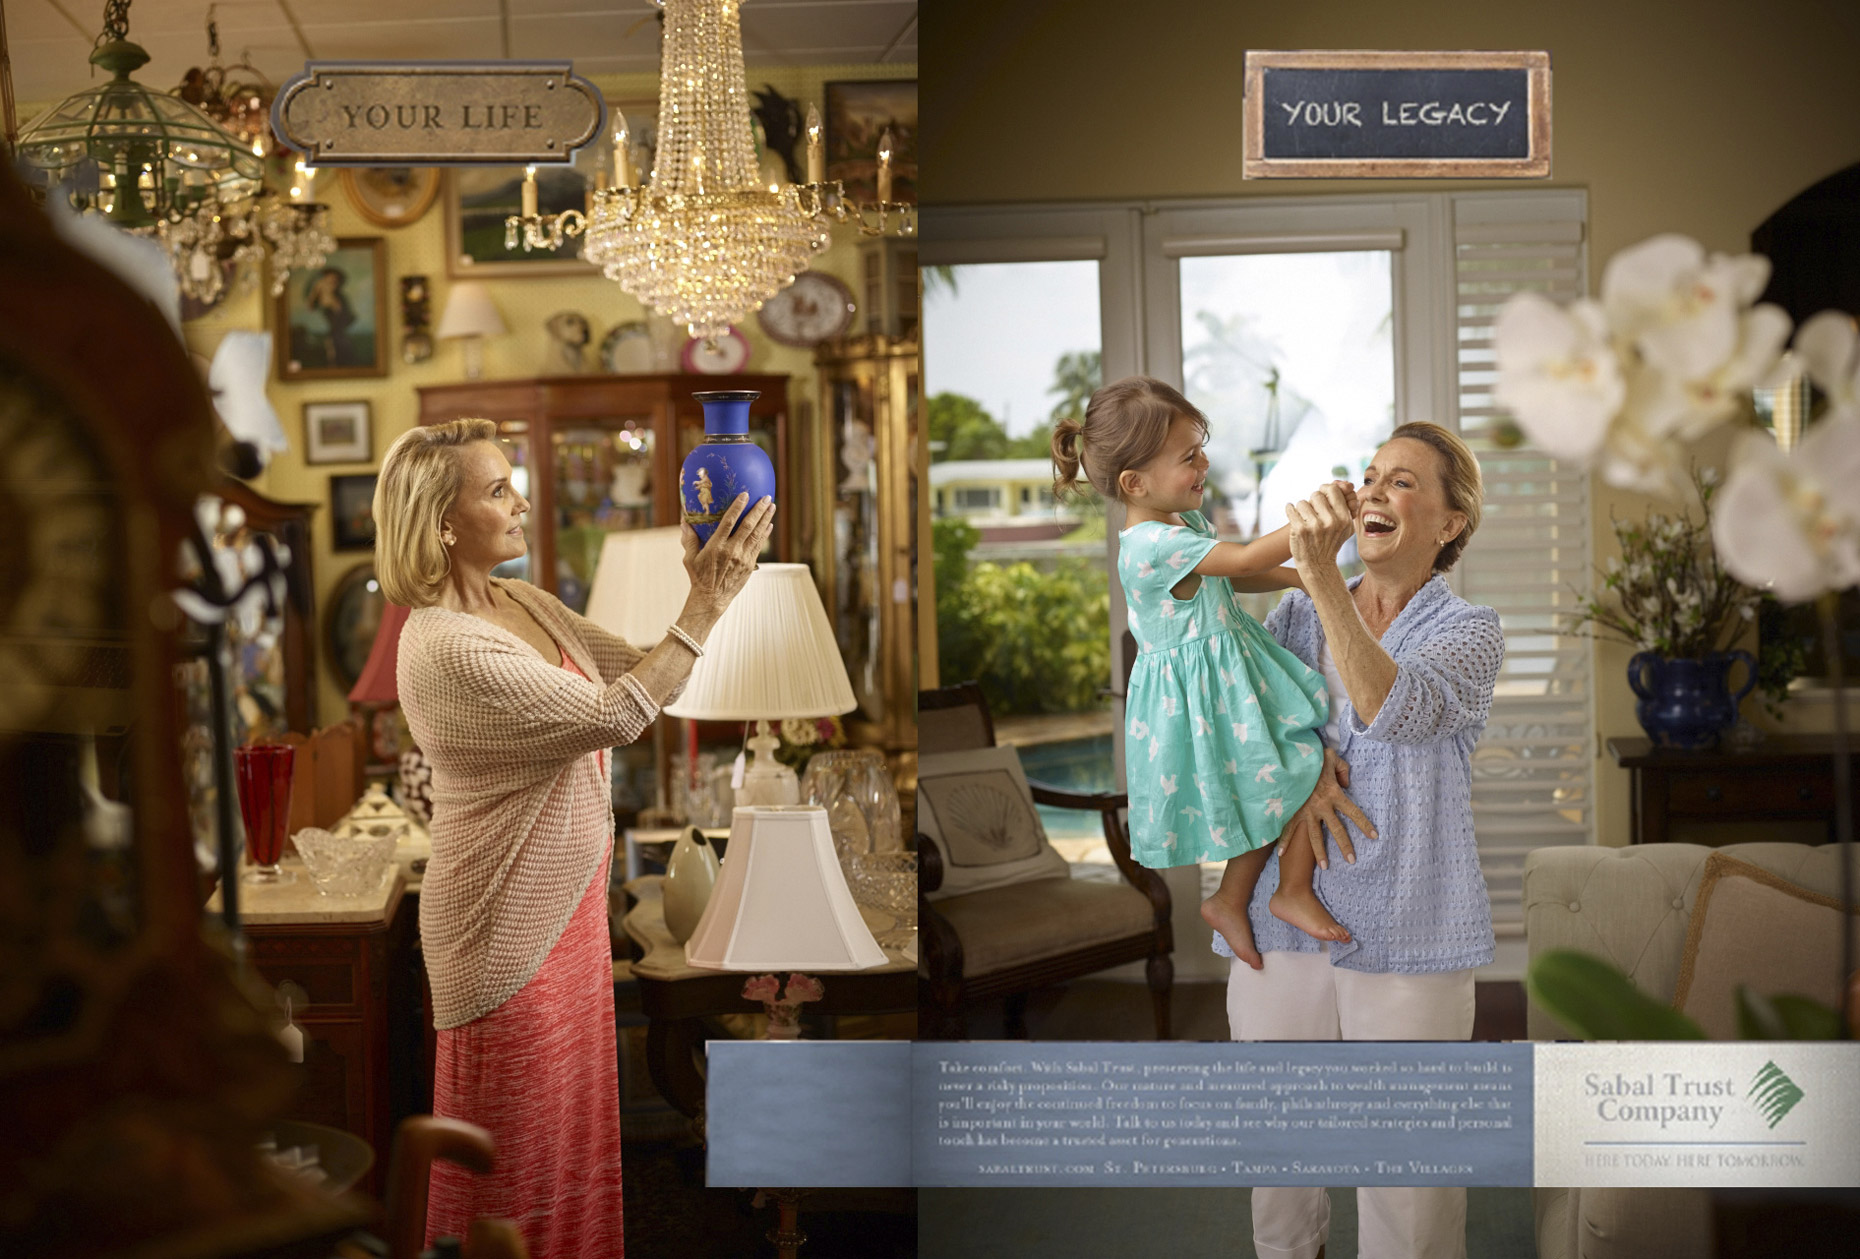 Sabal Trust Advertising Campaign | Miami Advertising and lifestyle photographer: Jeffery Salter